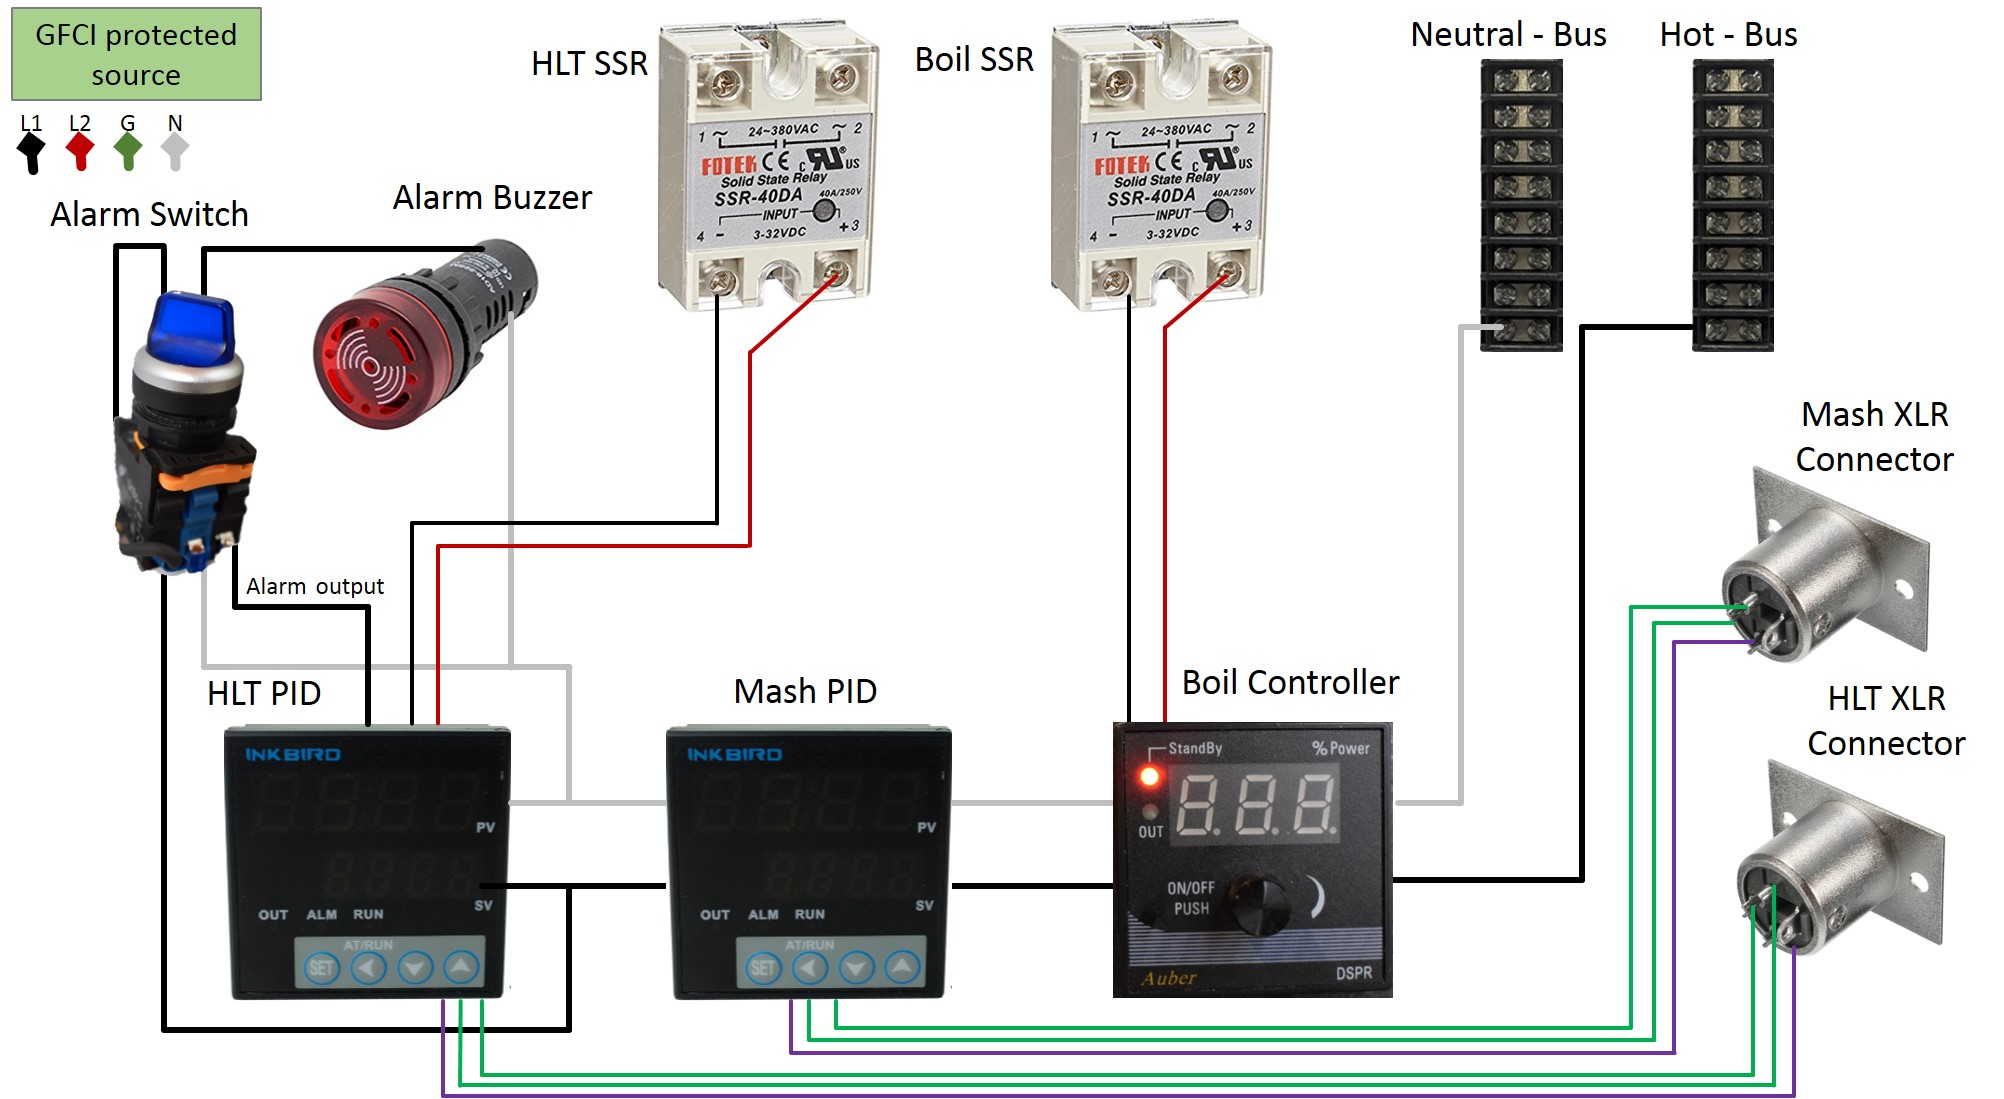 pid temperature controller kit wiring diagram simple male frog dissection e herms brewery build forum taming the penguin only be activated if alarm switch is in on position and hlt triggering an wire s according manufacturer instructions